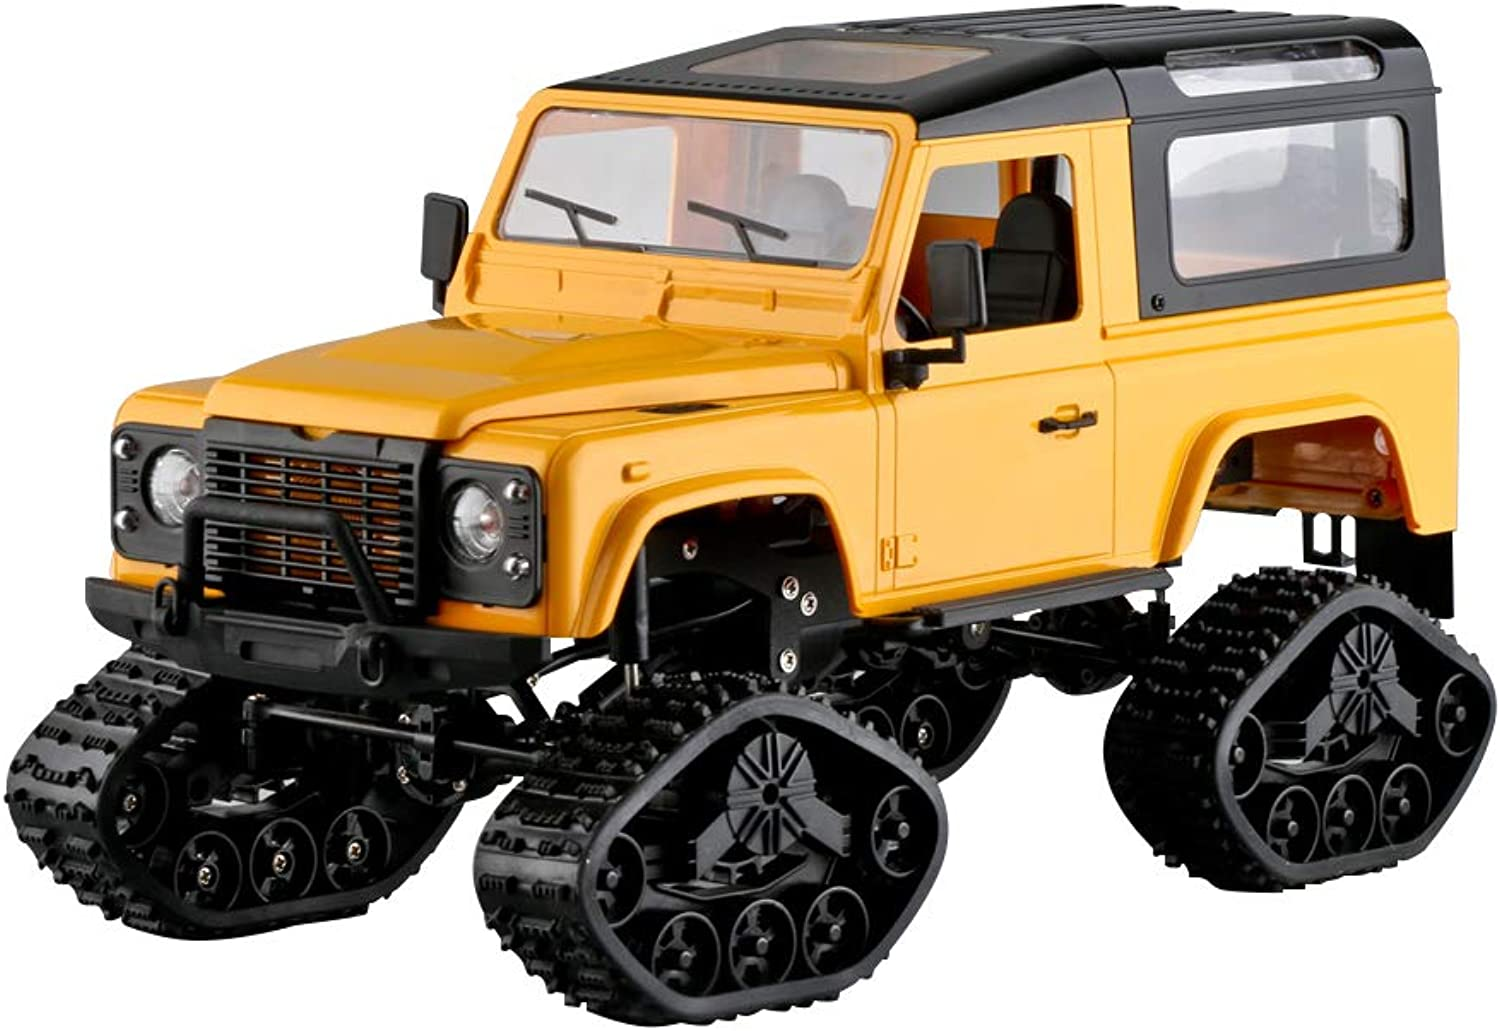 Faironly FY003 2.4 G 4WD Off-Road Snowfield WiFi Control Metallrahmen RC Auto 1 16 Without Camera Gelb B07PTR6VVD  Preiszugeständnisse       Good Design